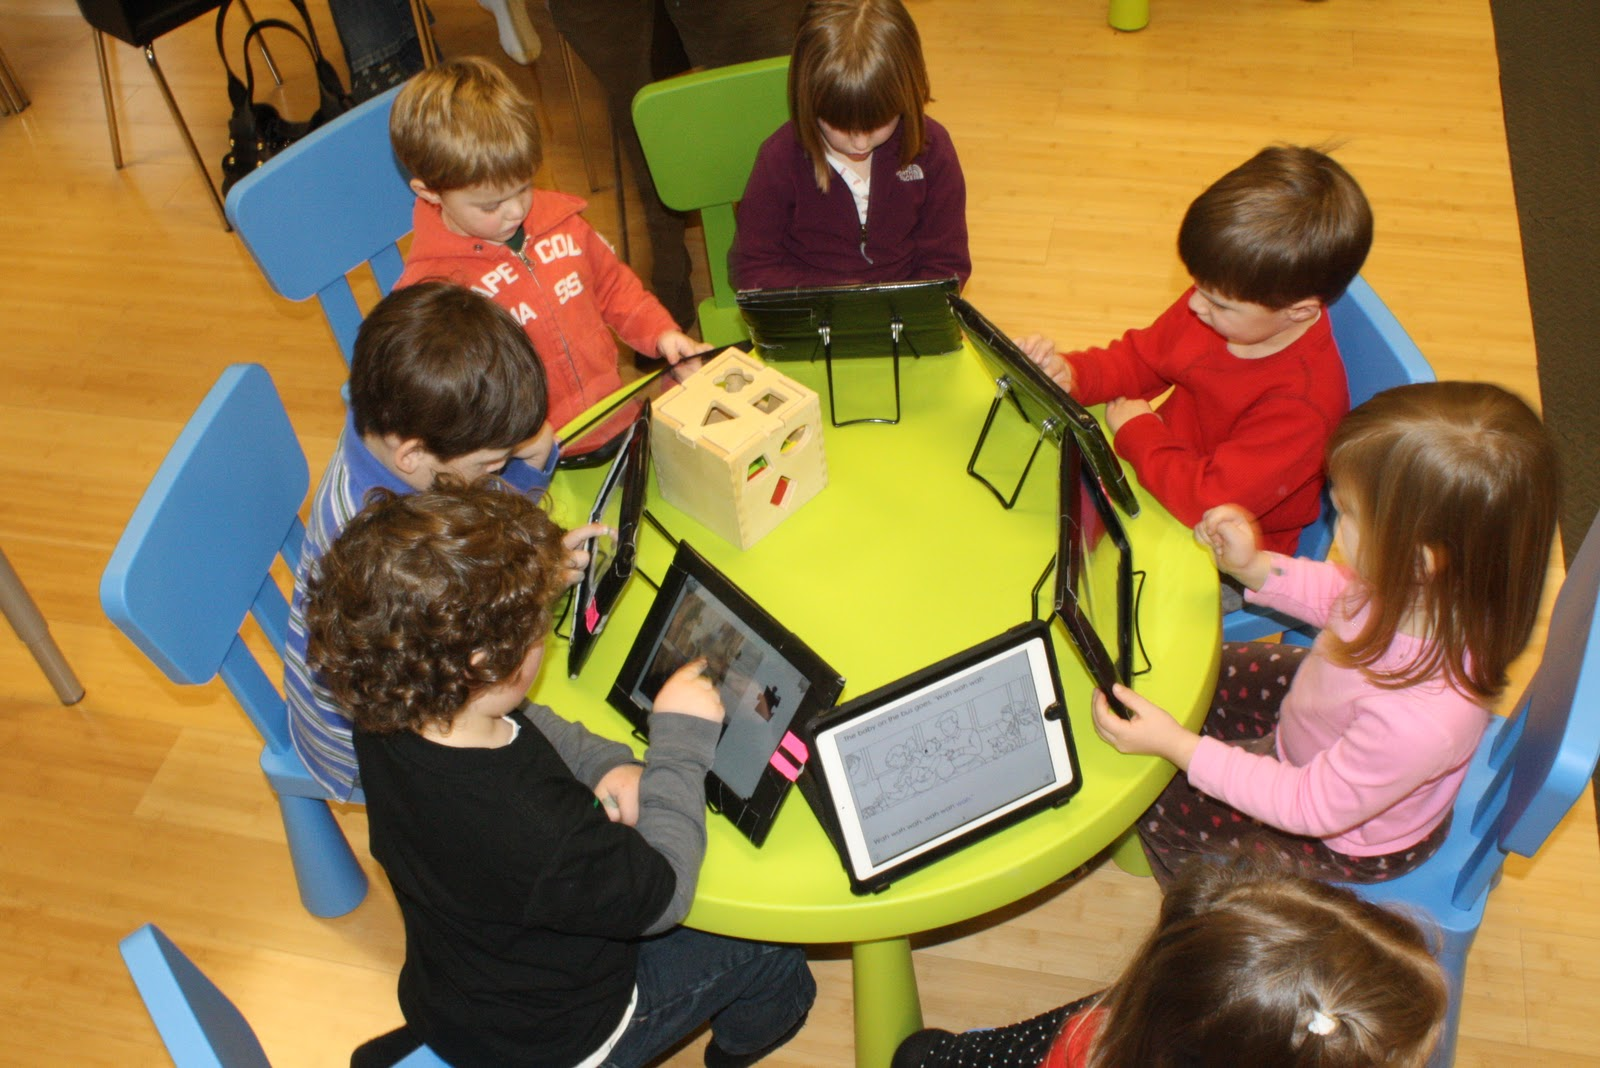 trend of technology in the classroom The flipped classroom - the idea of inverting traditional teaching methods by delivering instructions online outside of the classroom and using the time in school as the place to do homework.